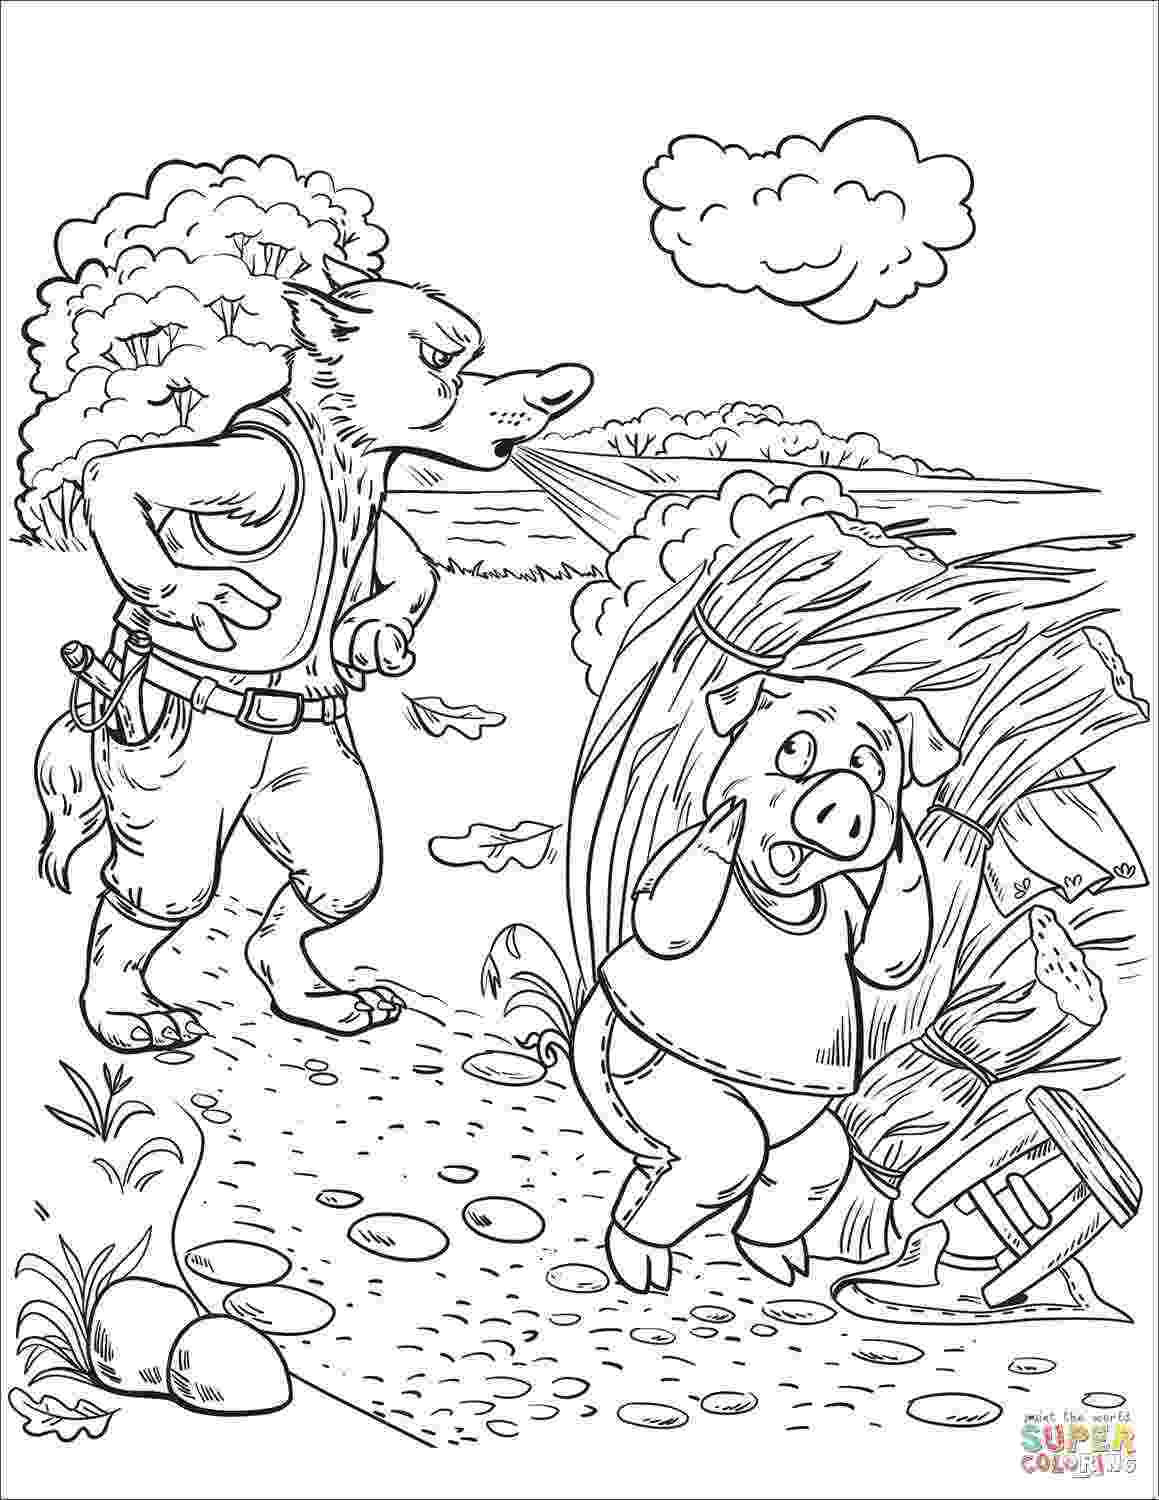 peter and the wolf coloring pages 1000 images about peter and the wolf on pinterest peter wolf pages peter and coloring the